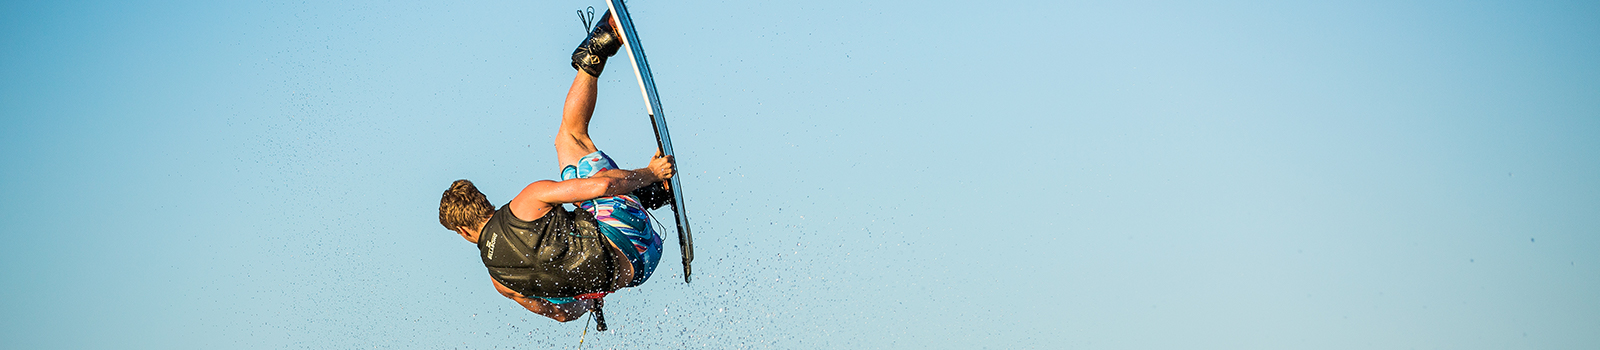 Wakeboard-Tops